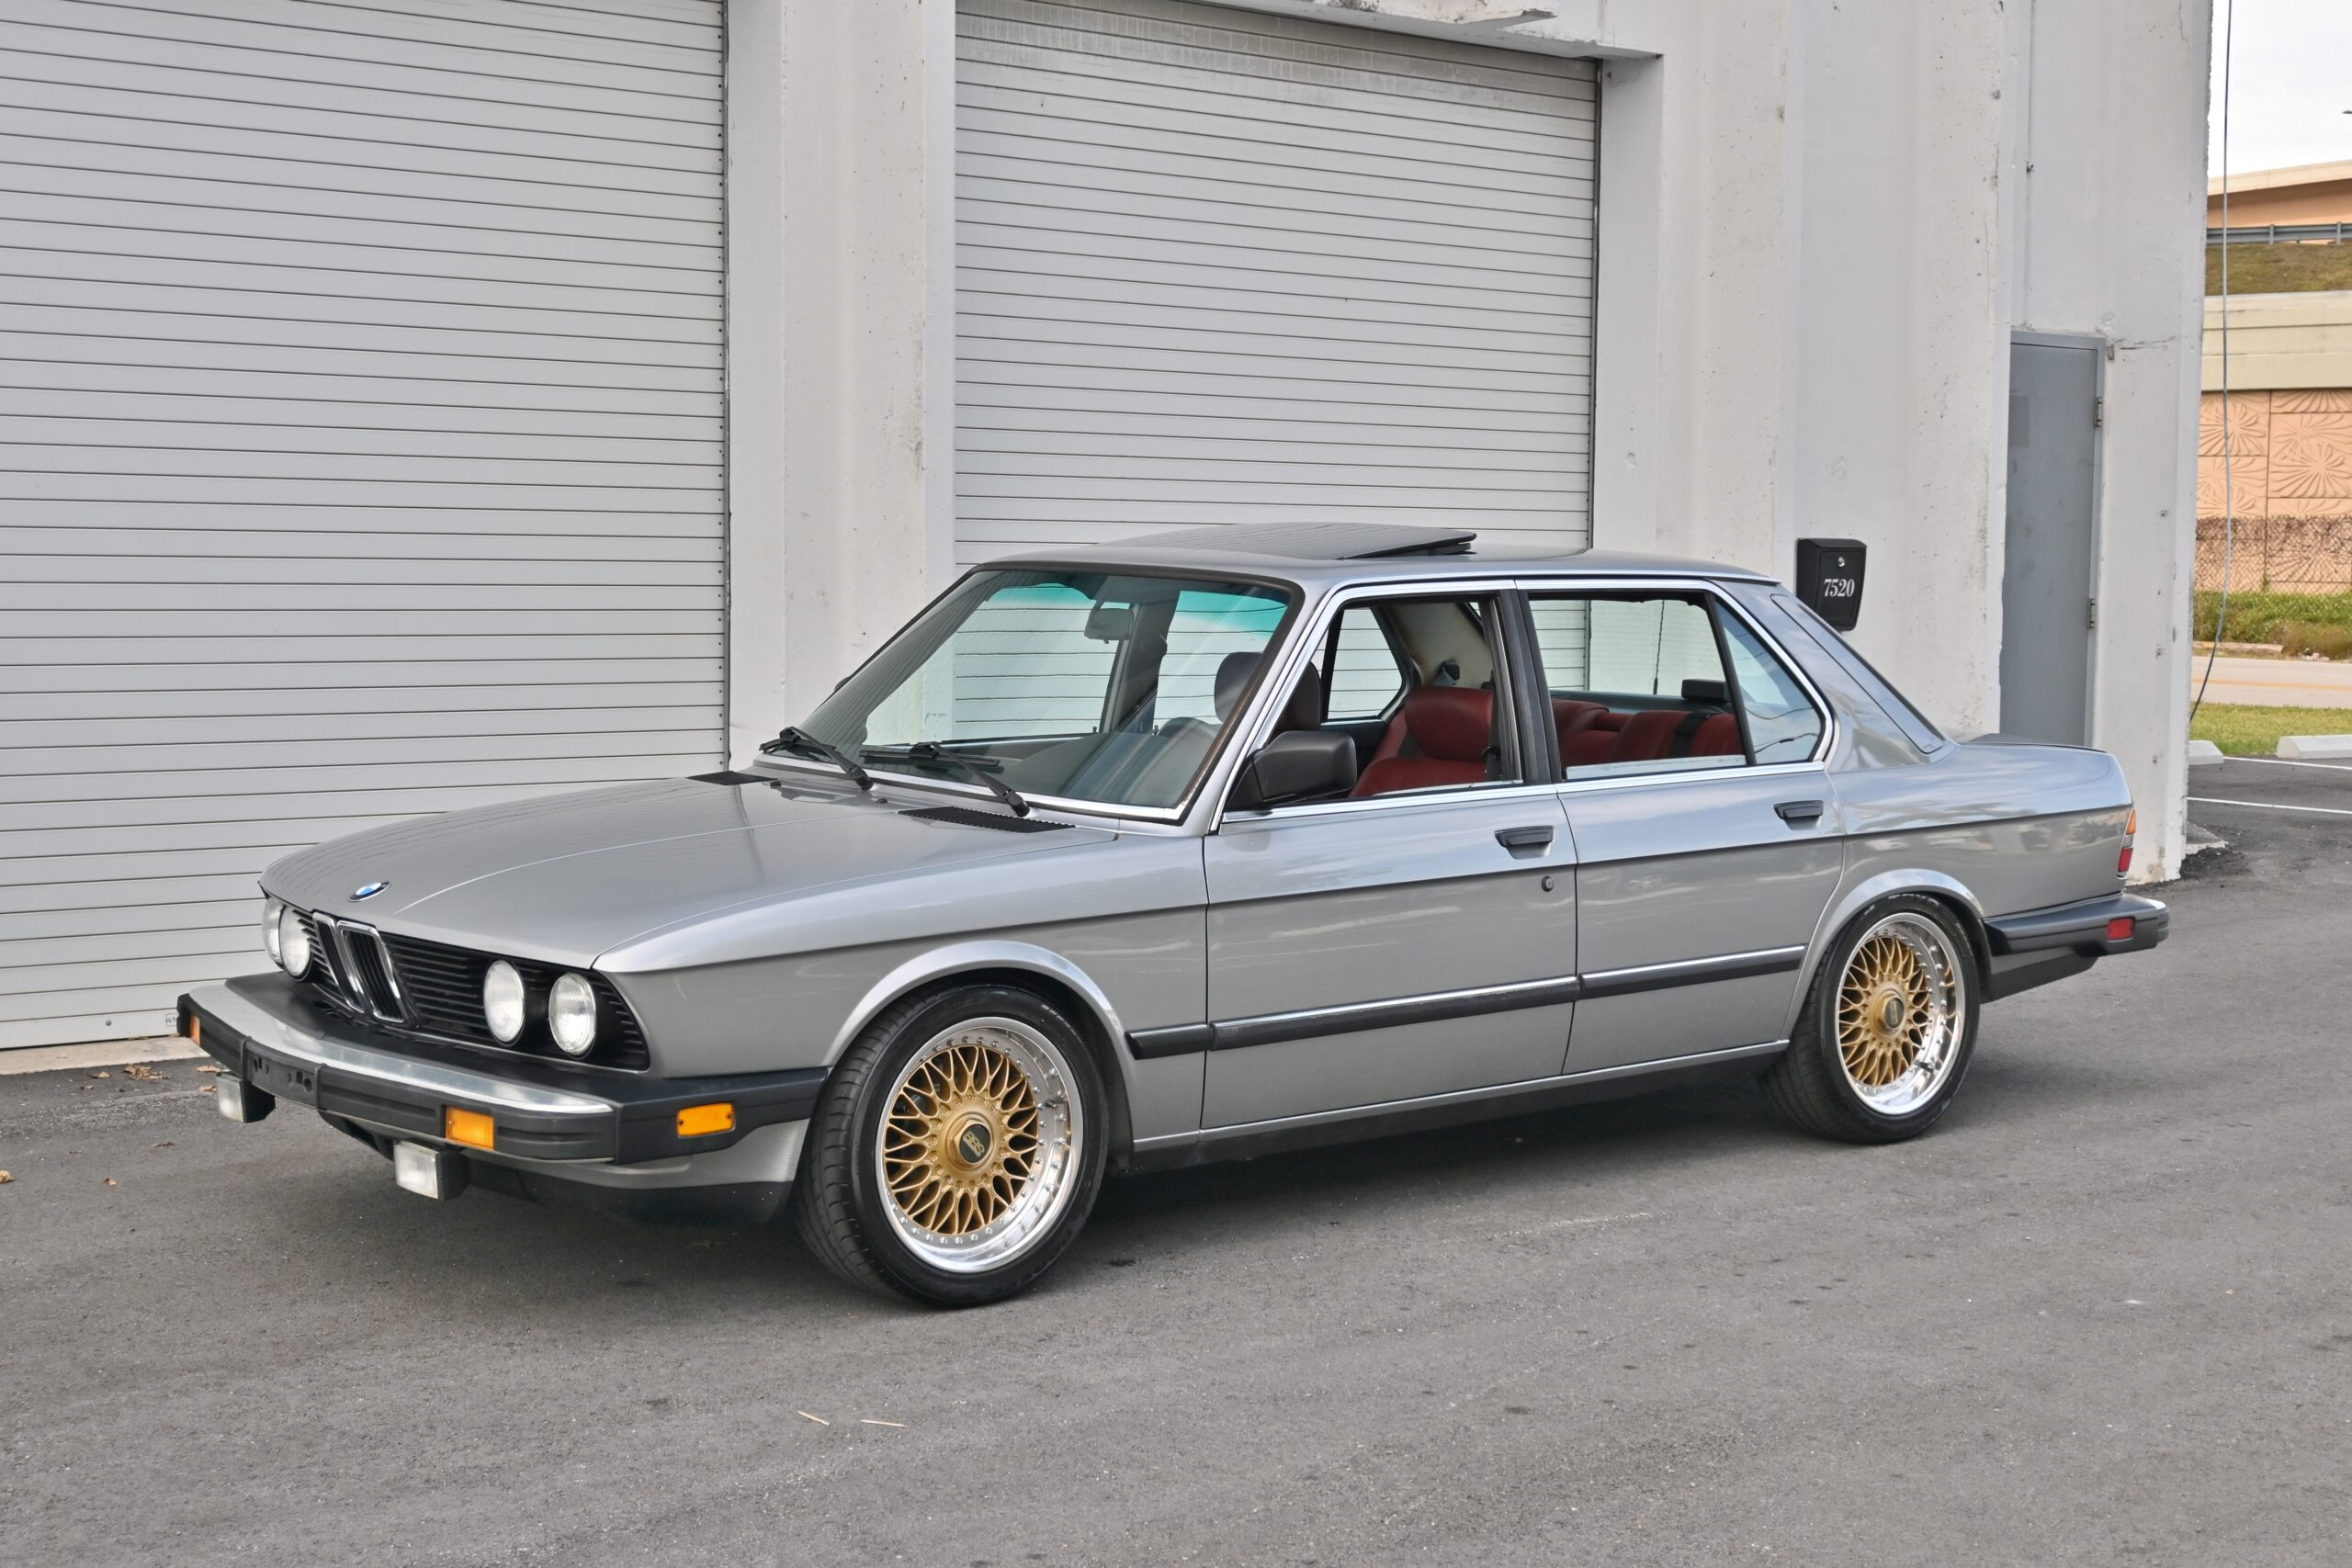 1987 BMW 528e, Manual 5-speed, Salmon Silver over red leather, Euro Height, BBS Wheels Just serviced.